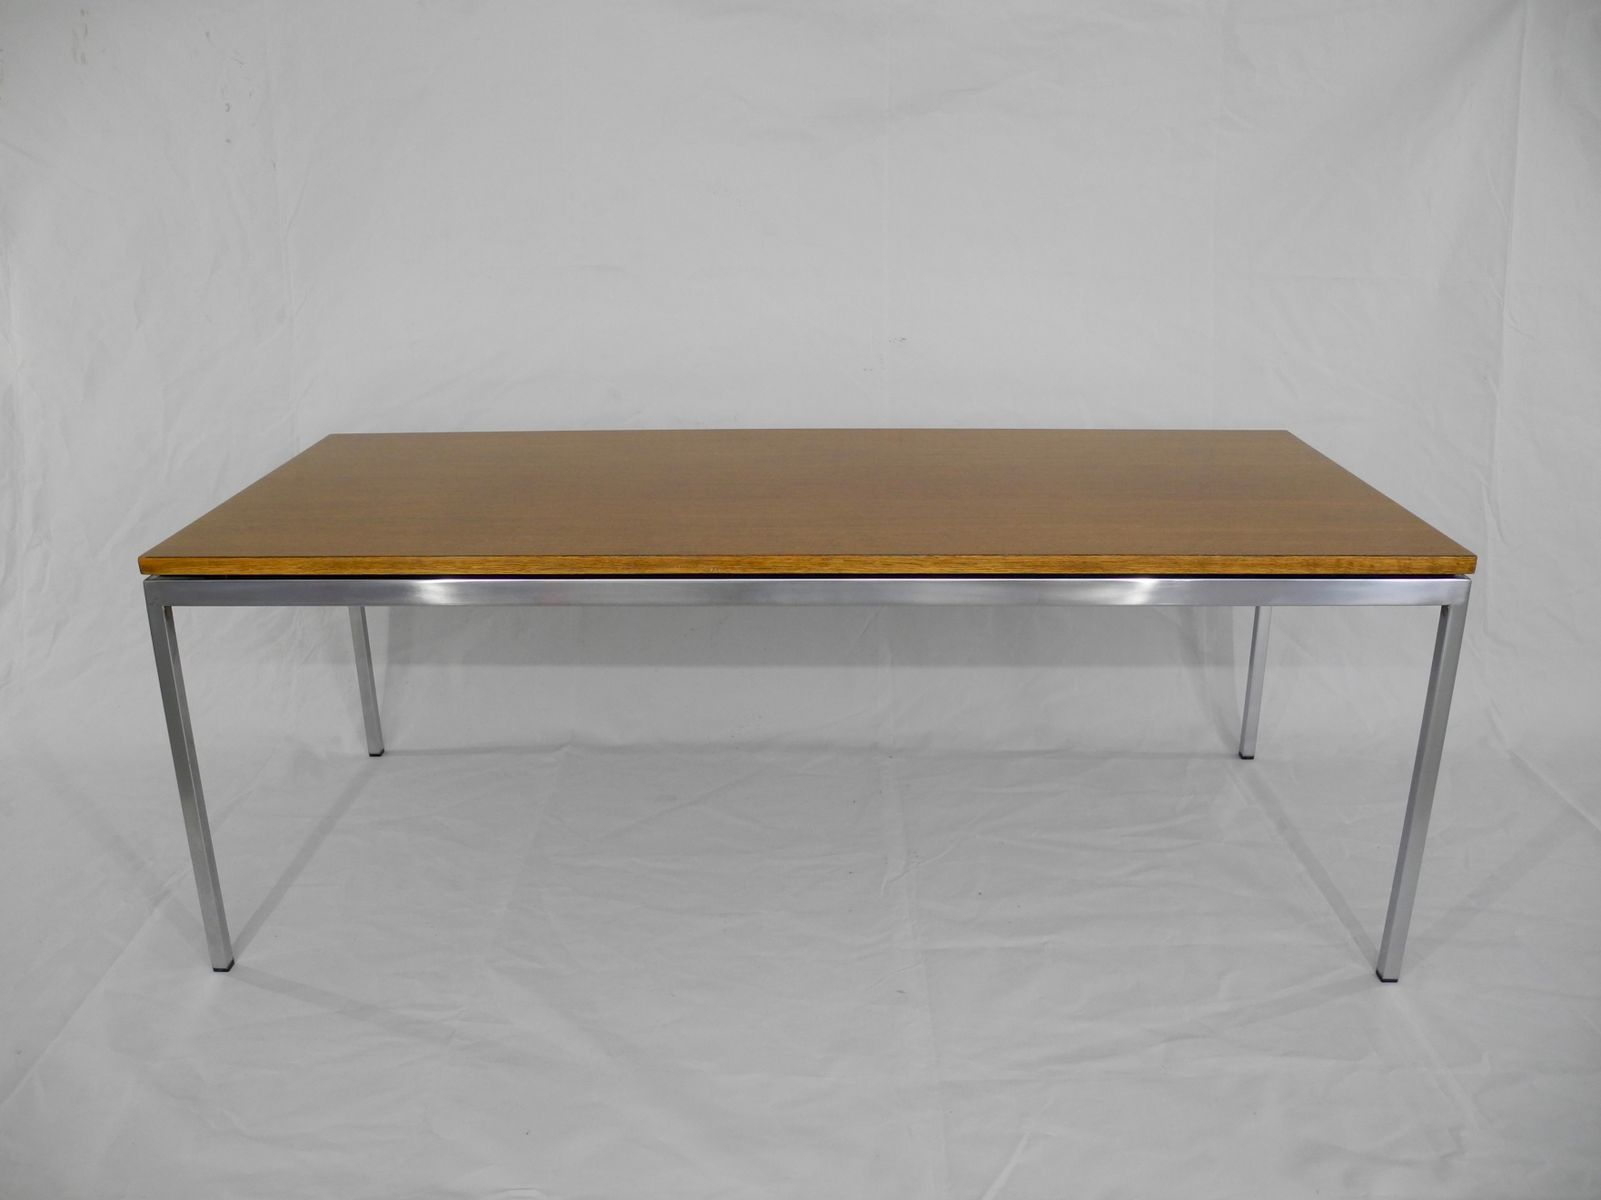 Vintage Model 2511 Coffee Table by Florence Knoll for Knoll